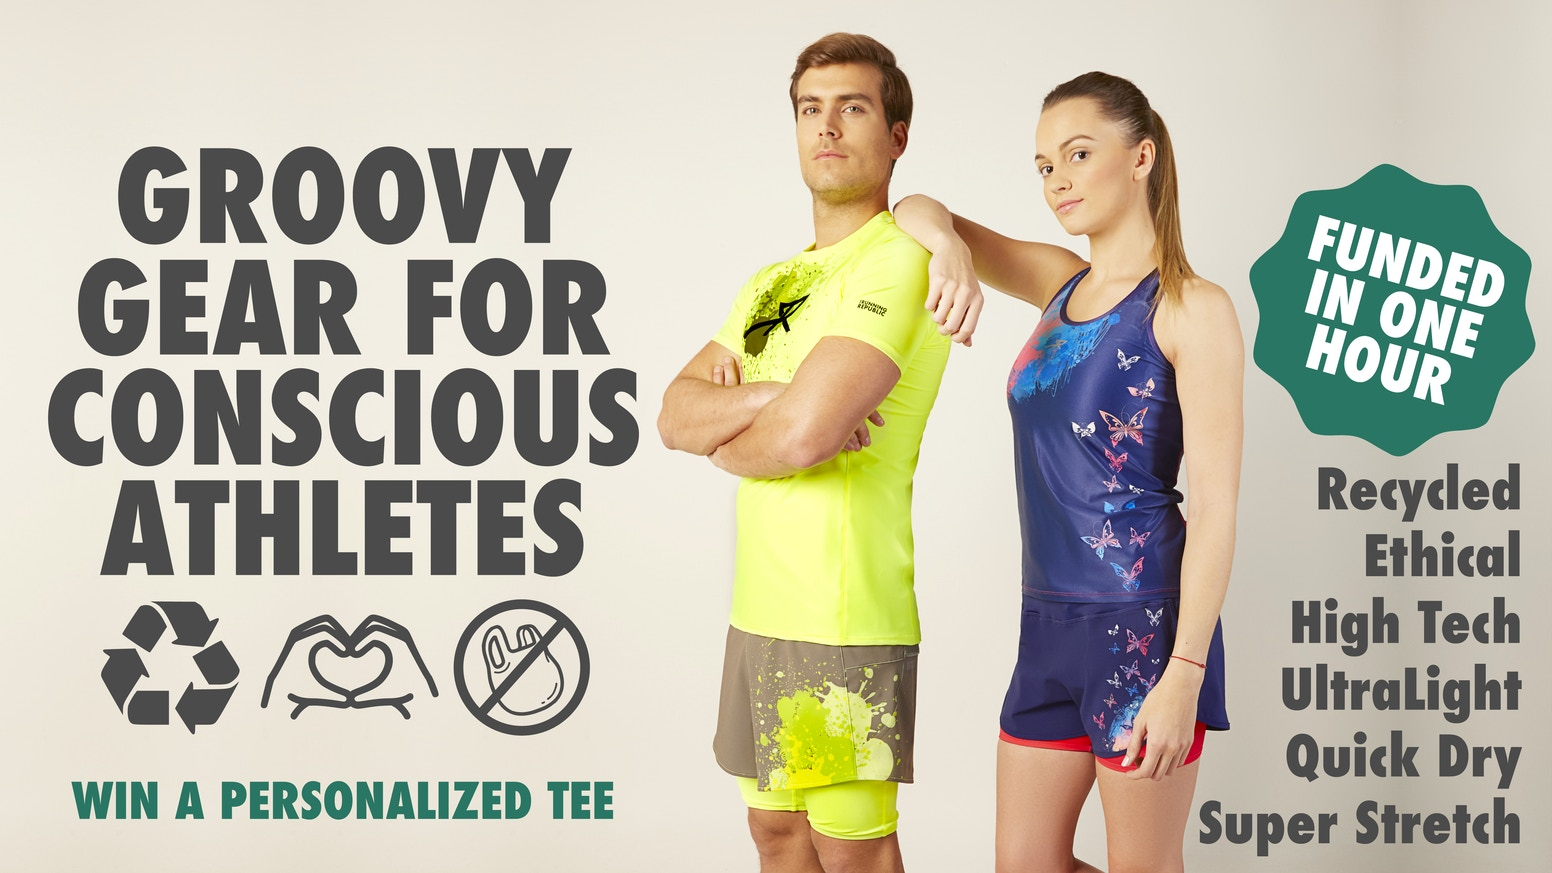 High tech | Recycled | Quick Drying | Uv Protection | 4-way stretch | Odorless. The athletic brand for conscious people.